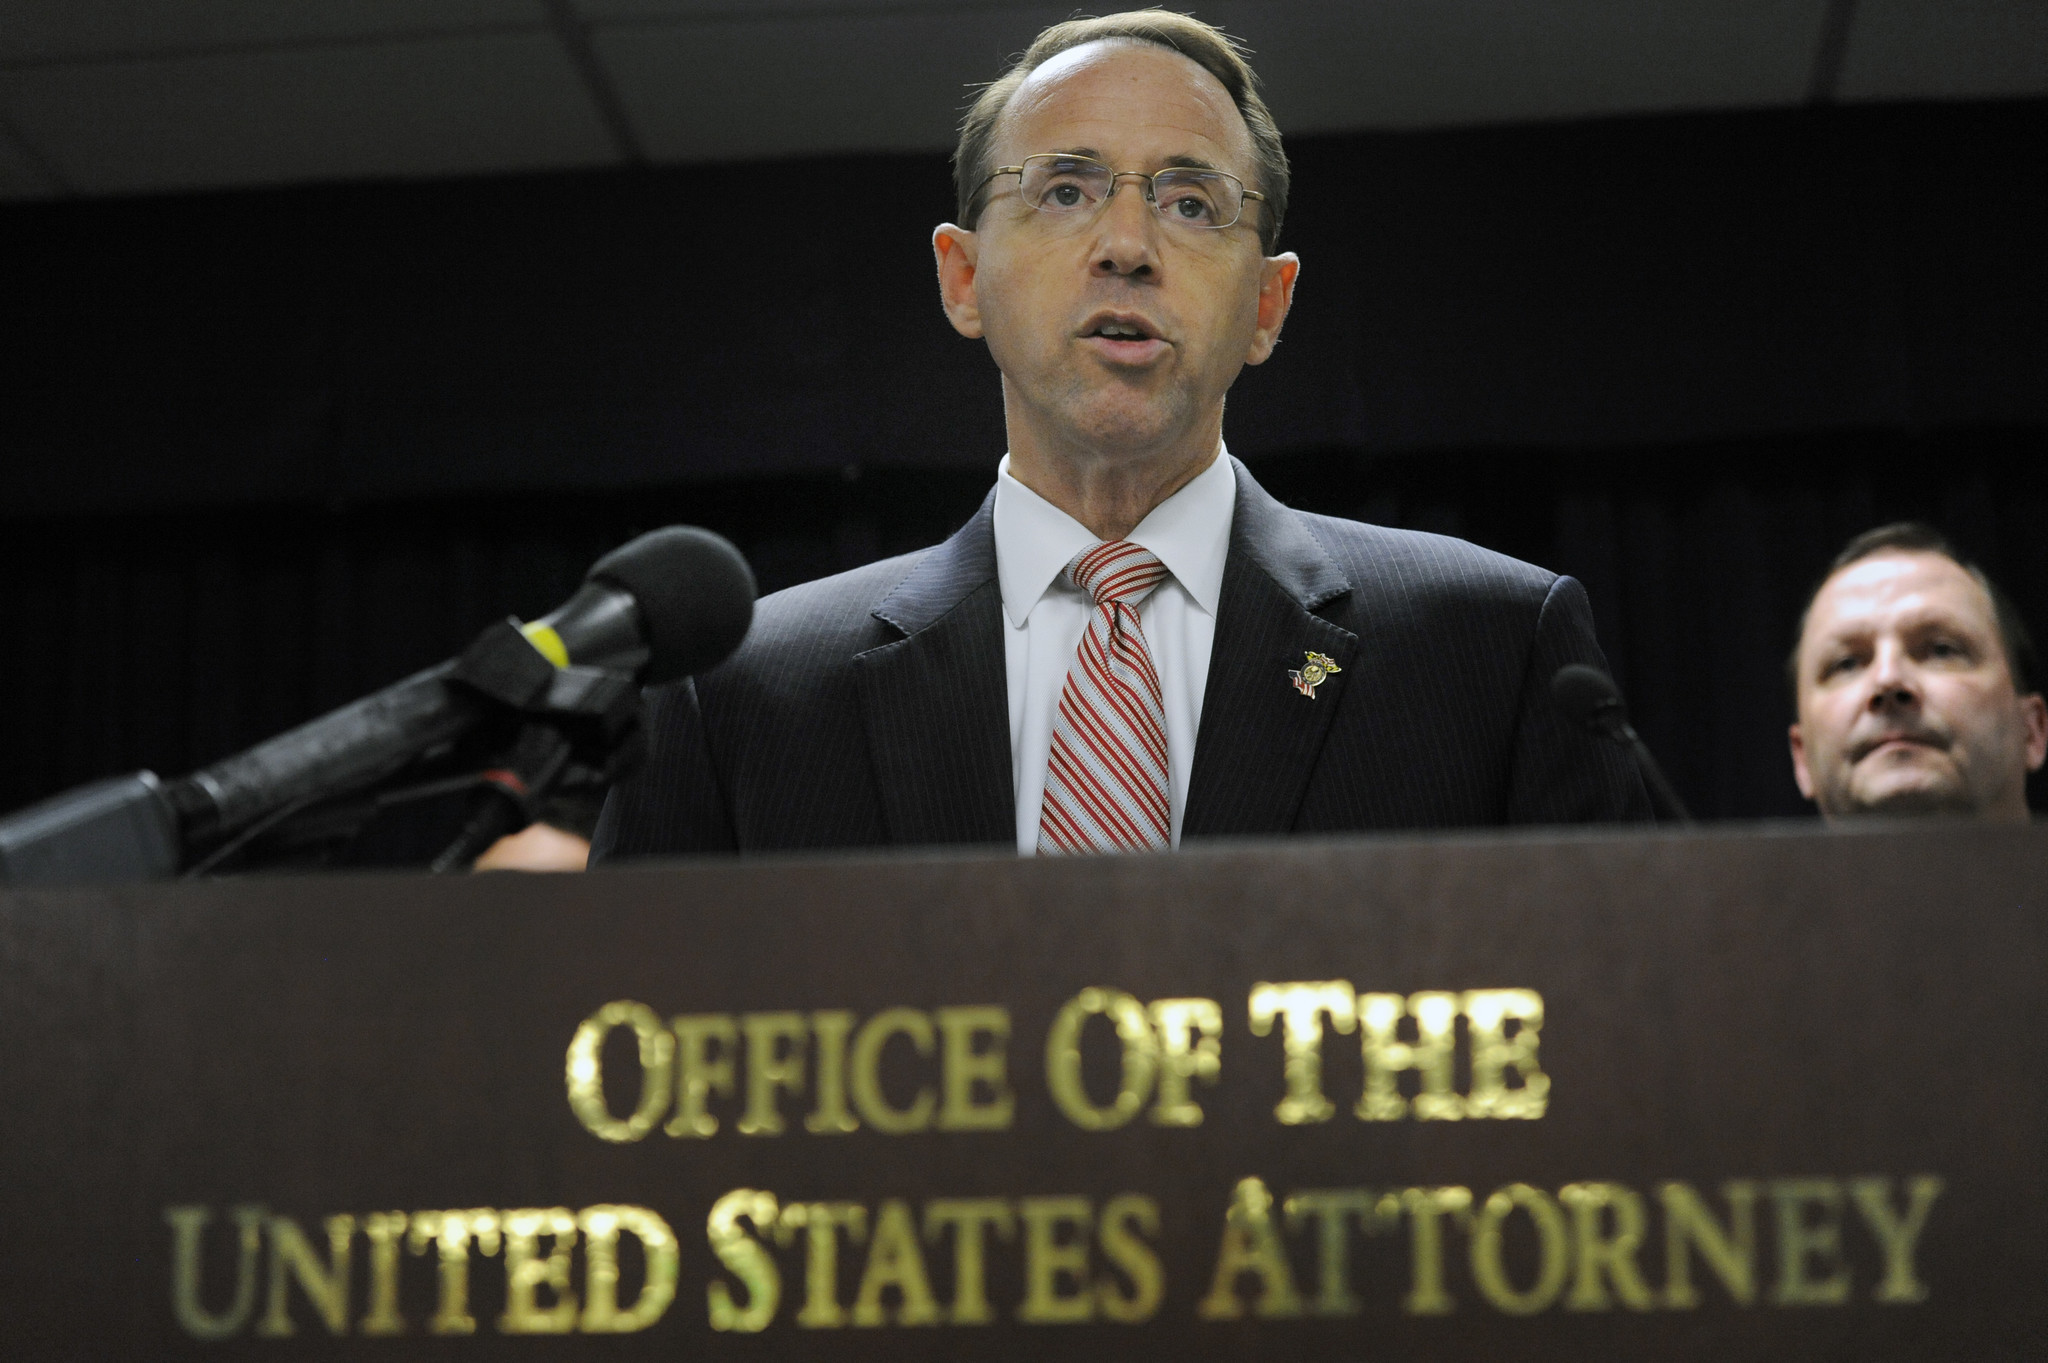 Image result for PHOTO OF ROD ROSENSTEIN